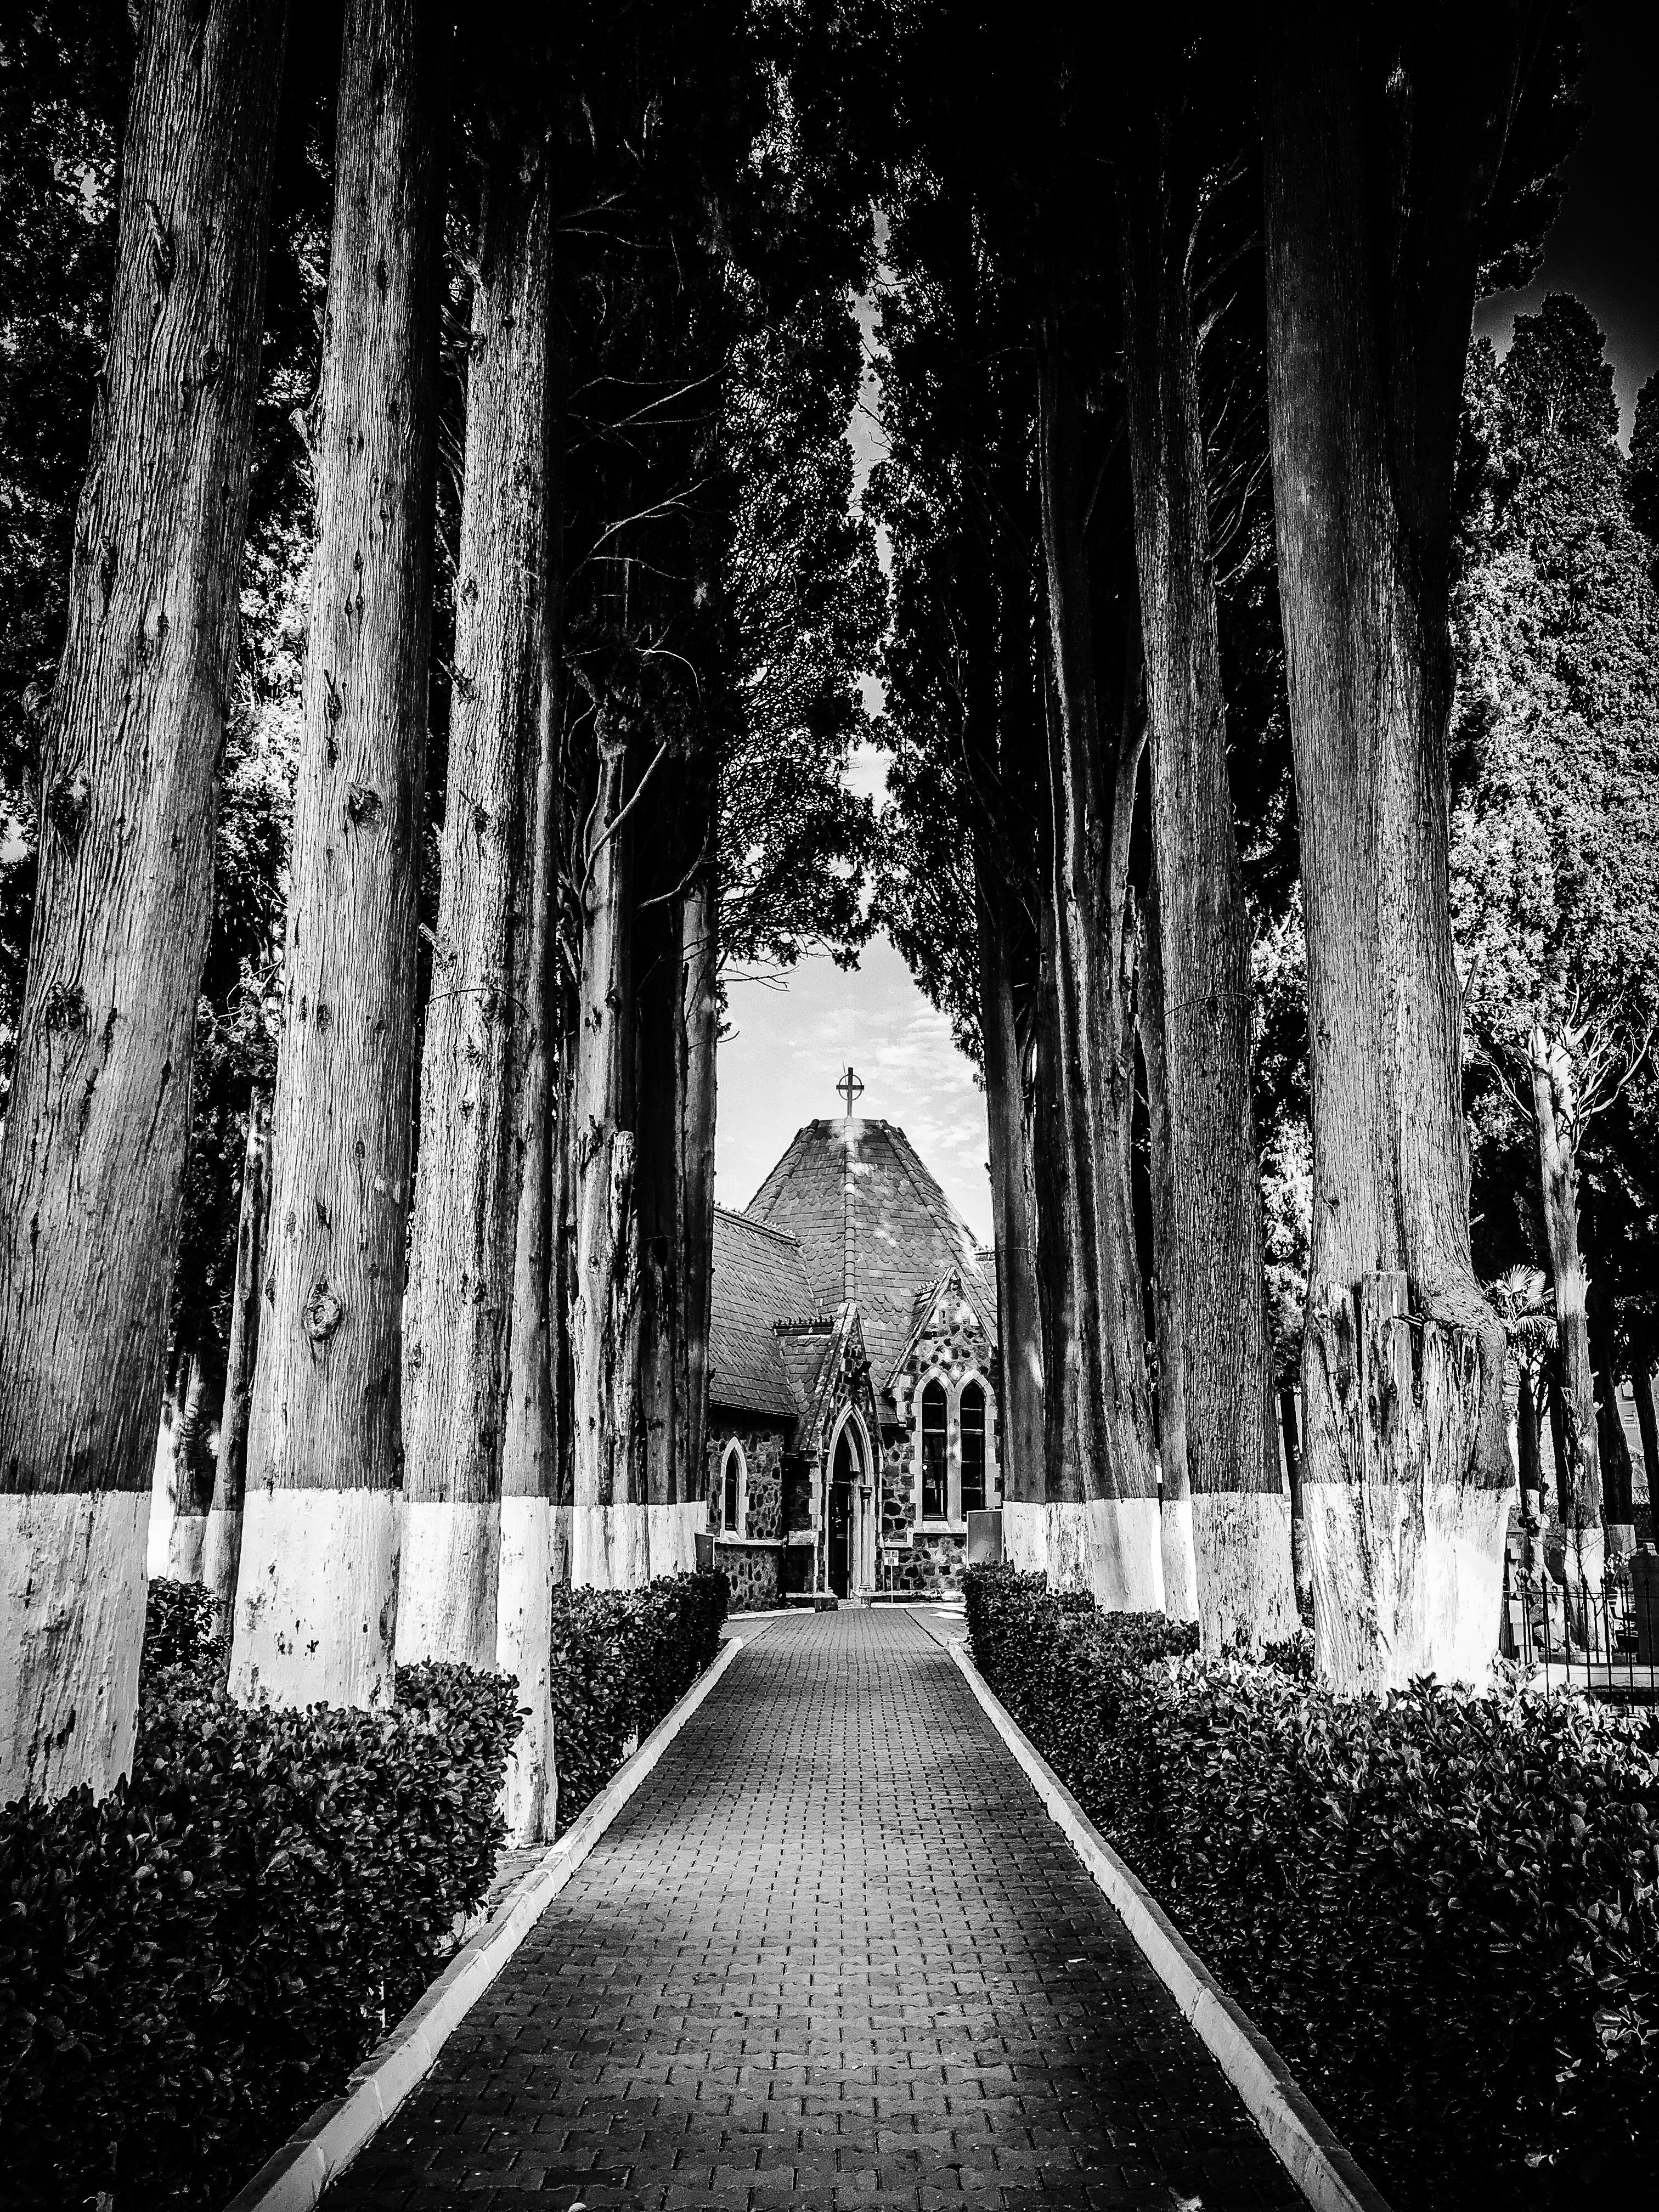 Pathway Through Cathedral Surrounded by Trees in Grayscale Photography